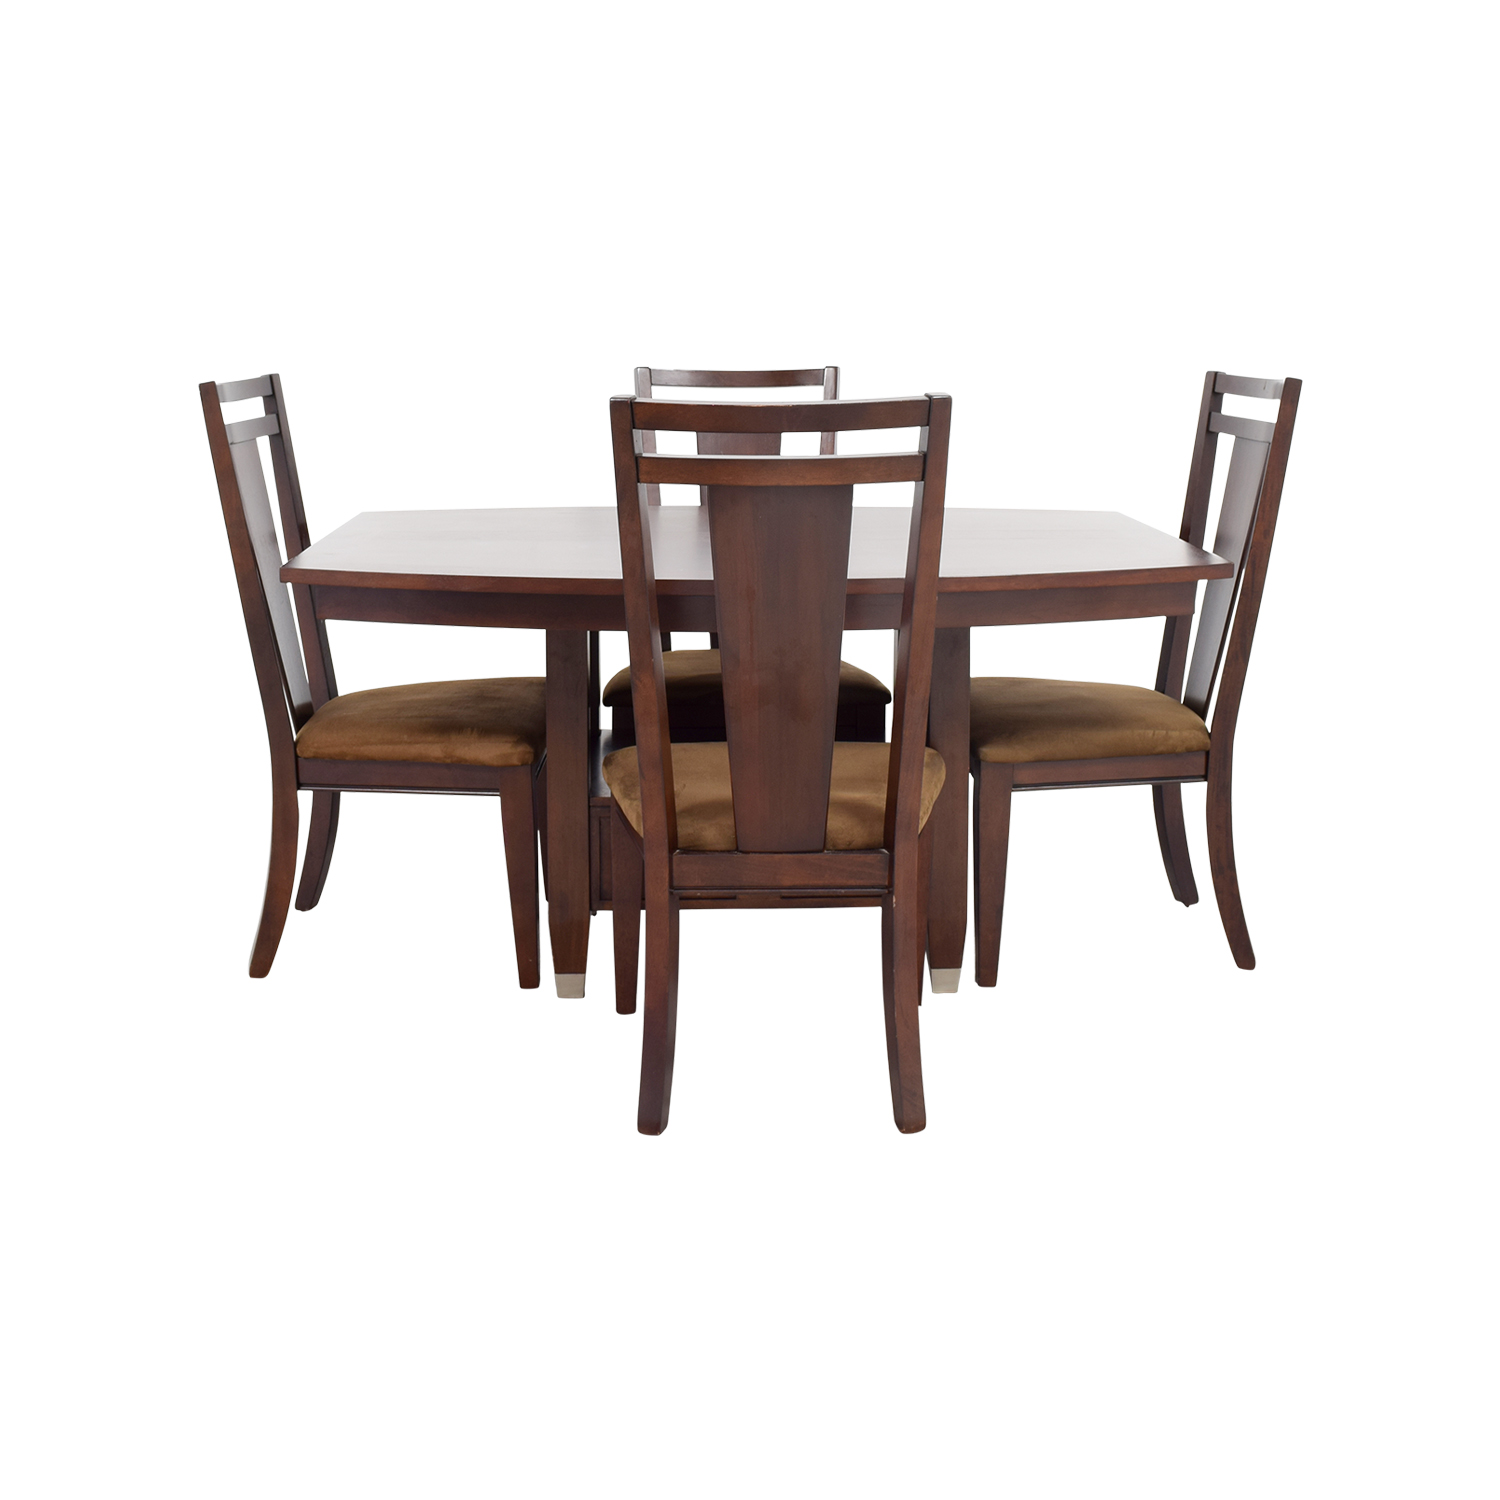 Wooden Dining Table Set ~ Off broyhill wood dining table set tables